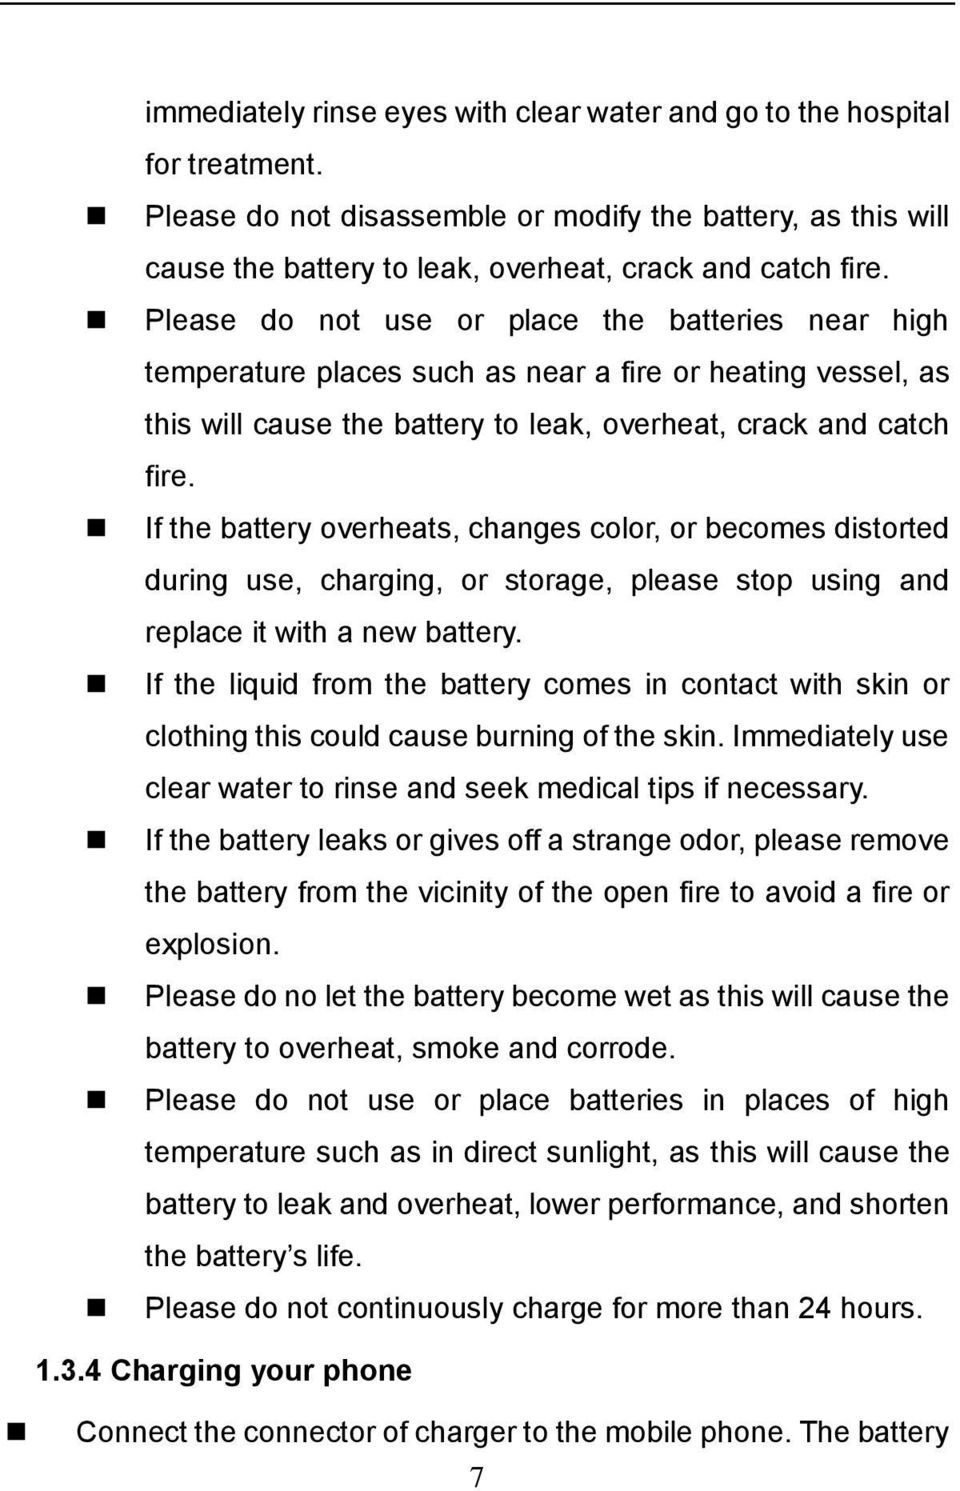 If the battery overheats, changes color, or becomes distorted during use, charging, or storage, please stop using and replace it with a new battery.